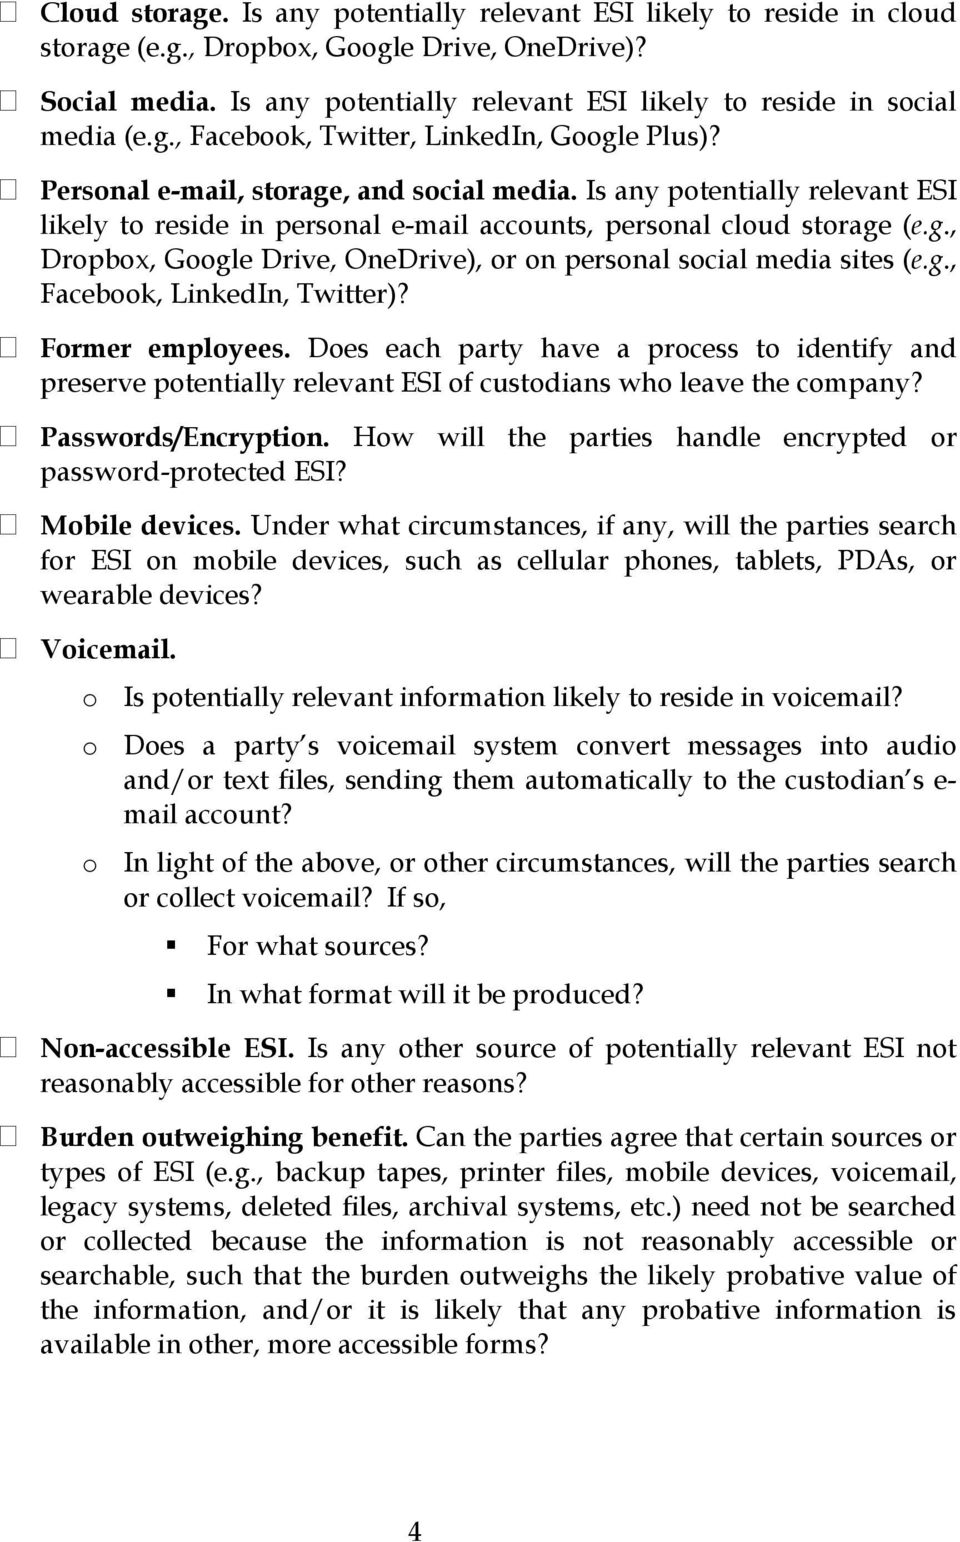 Is any potentially relevant ESI likely to reside in personal e-mail accounts, personal cloud storage (e.g., Dropbox, Google Drive, OneDrive), or on personal social media sites (e.g., Facebook, LinkedIn, Twitter)?